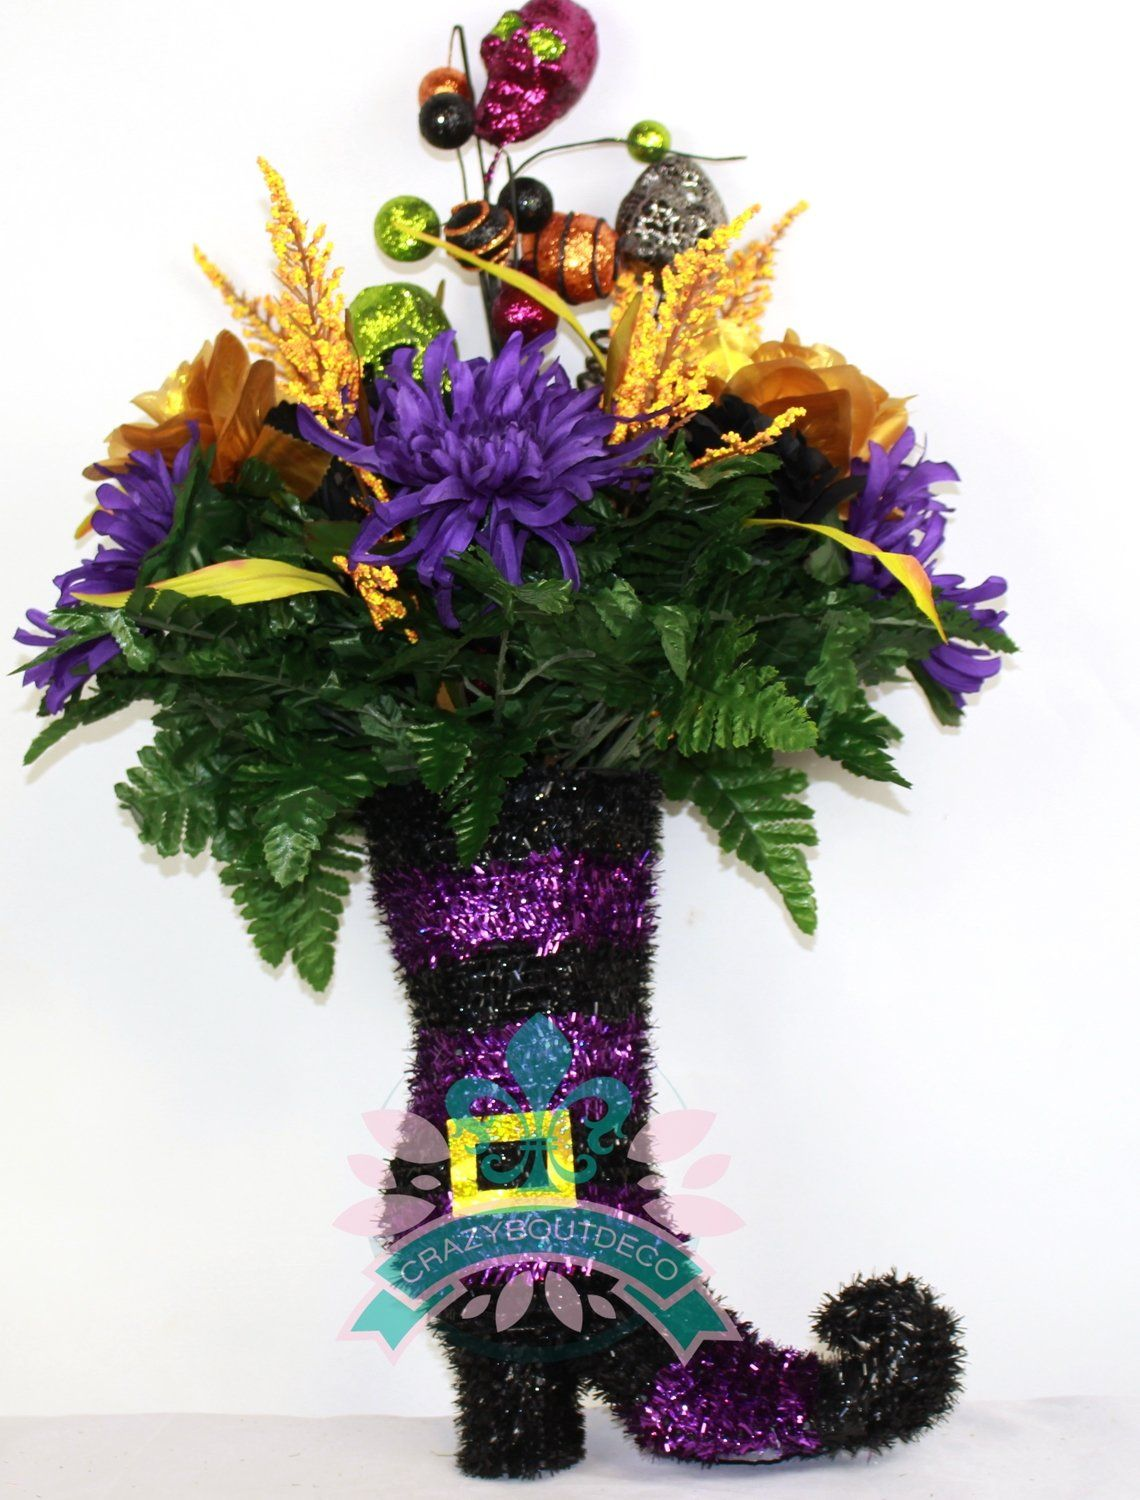 Cute Halloween Table Centerpiece In Witches Boot, $3299 Table - Halloween Table Decorations Pinterest